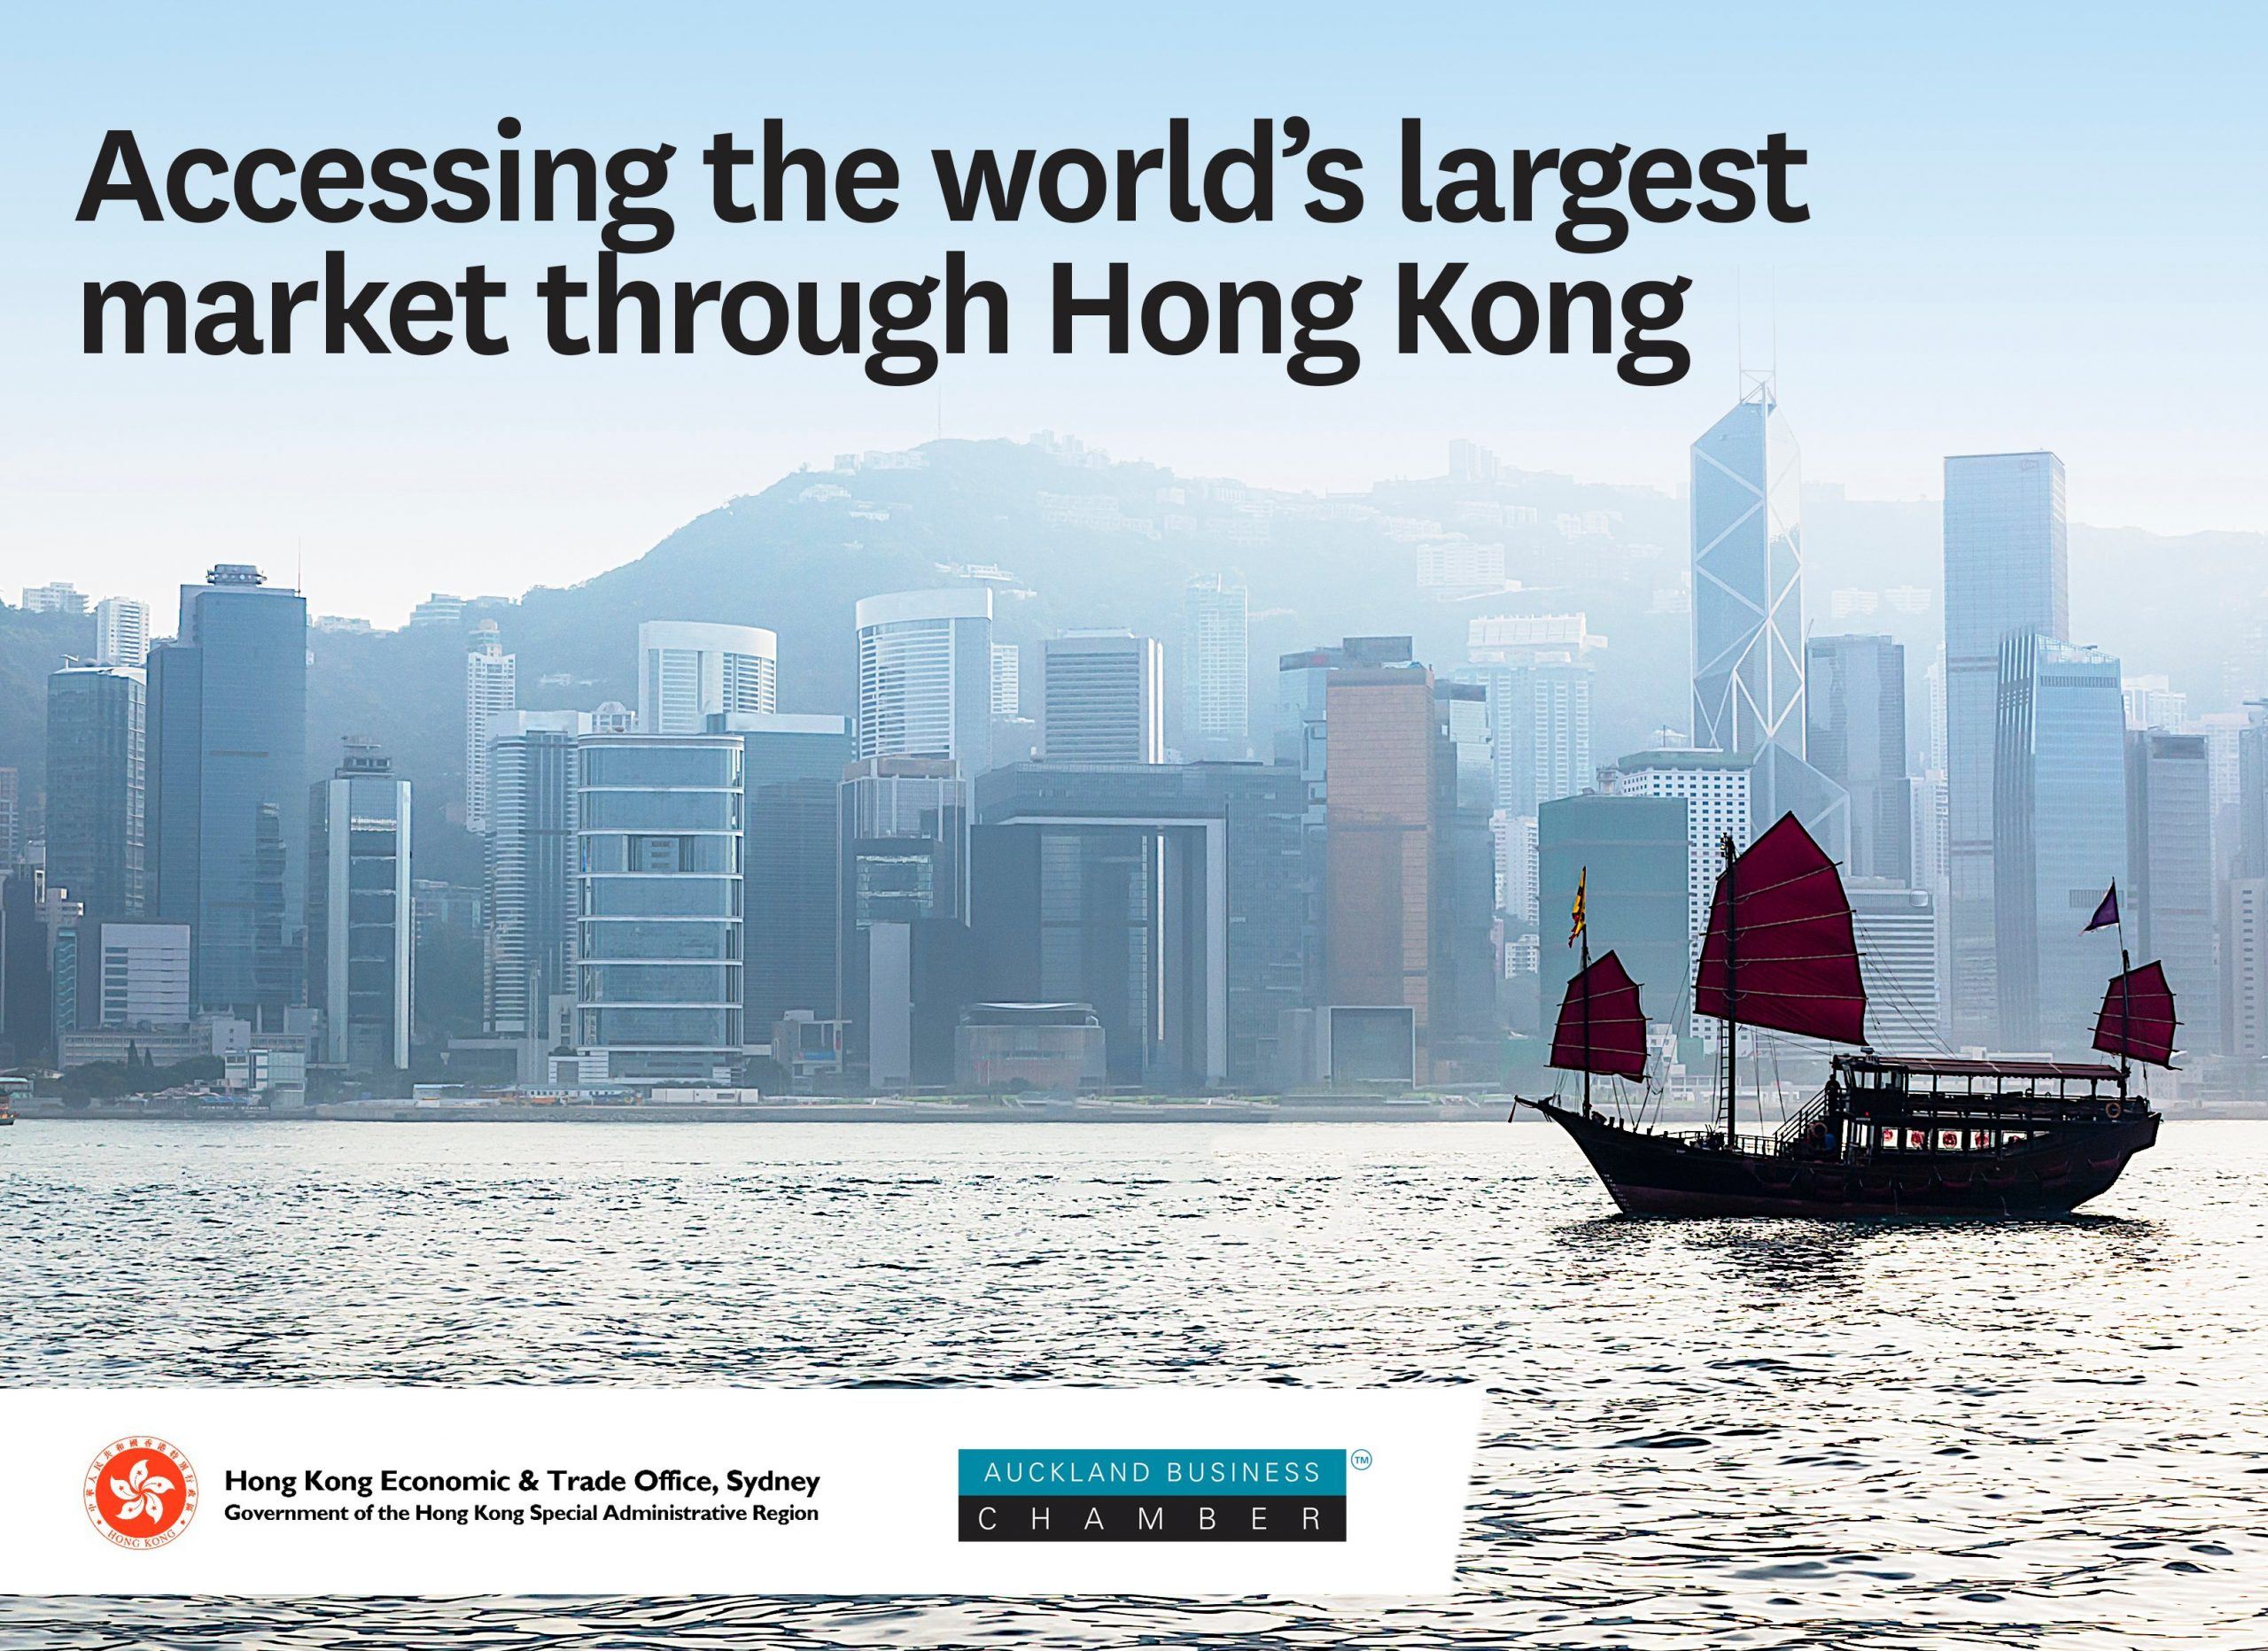 Accessing the world's largest market through Hong Kong